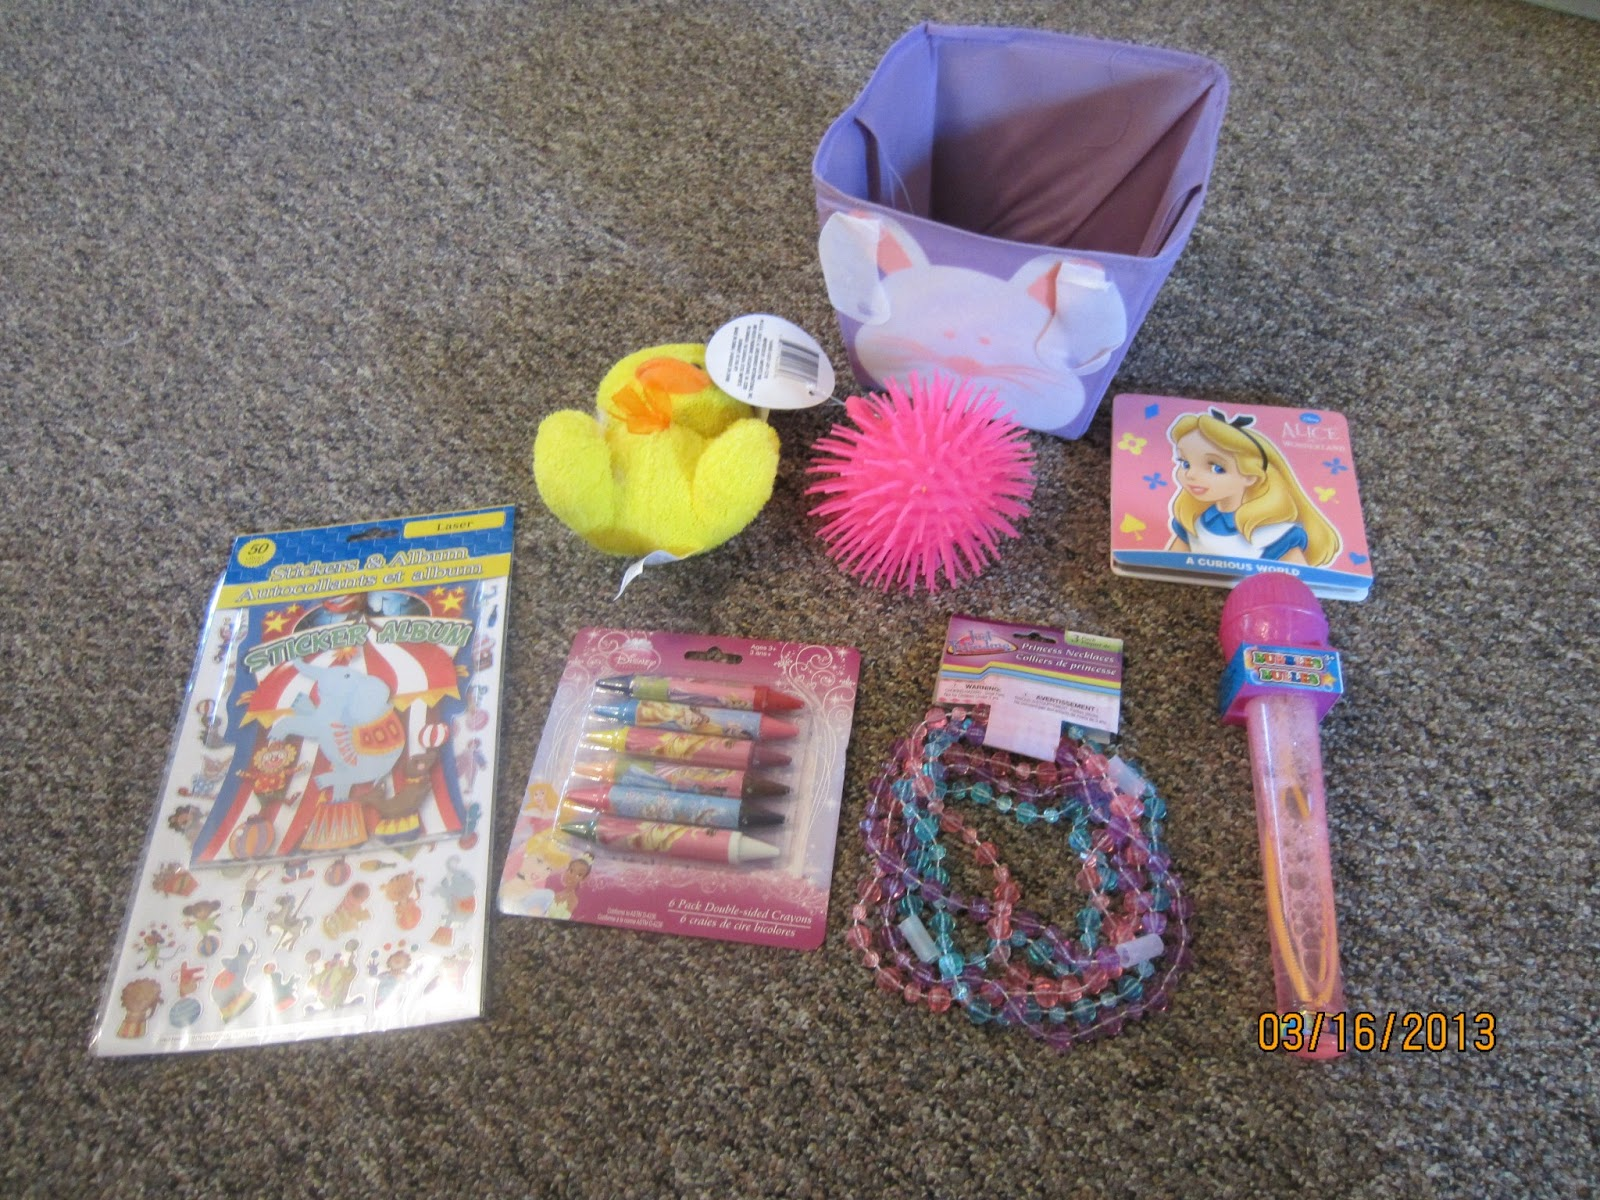 The best is yet to come candy free easter basket for a 1 year old so at the dollar tree we scored her super cute purple easter basket bubbles an alice in wonderland board book a 3 pack of necklaces negle